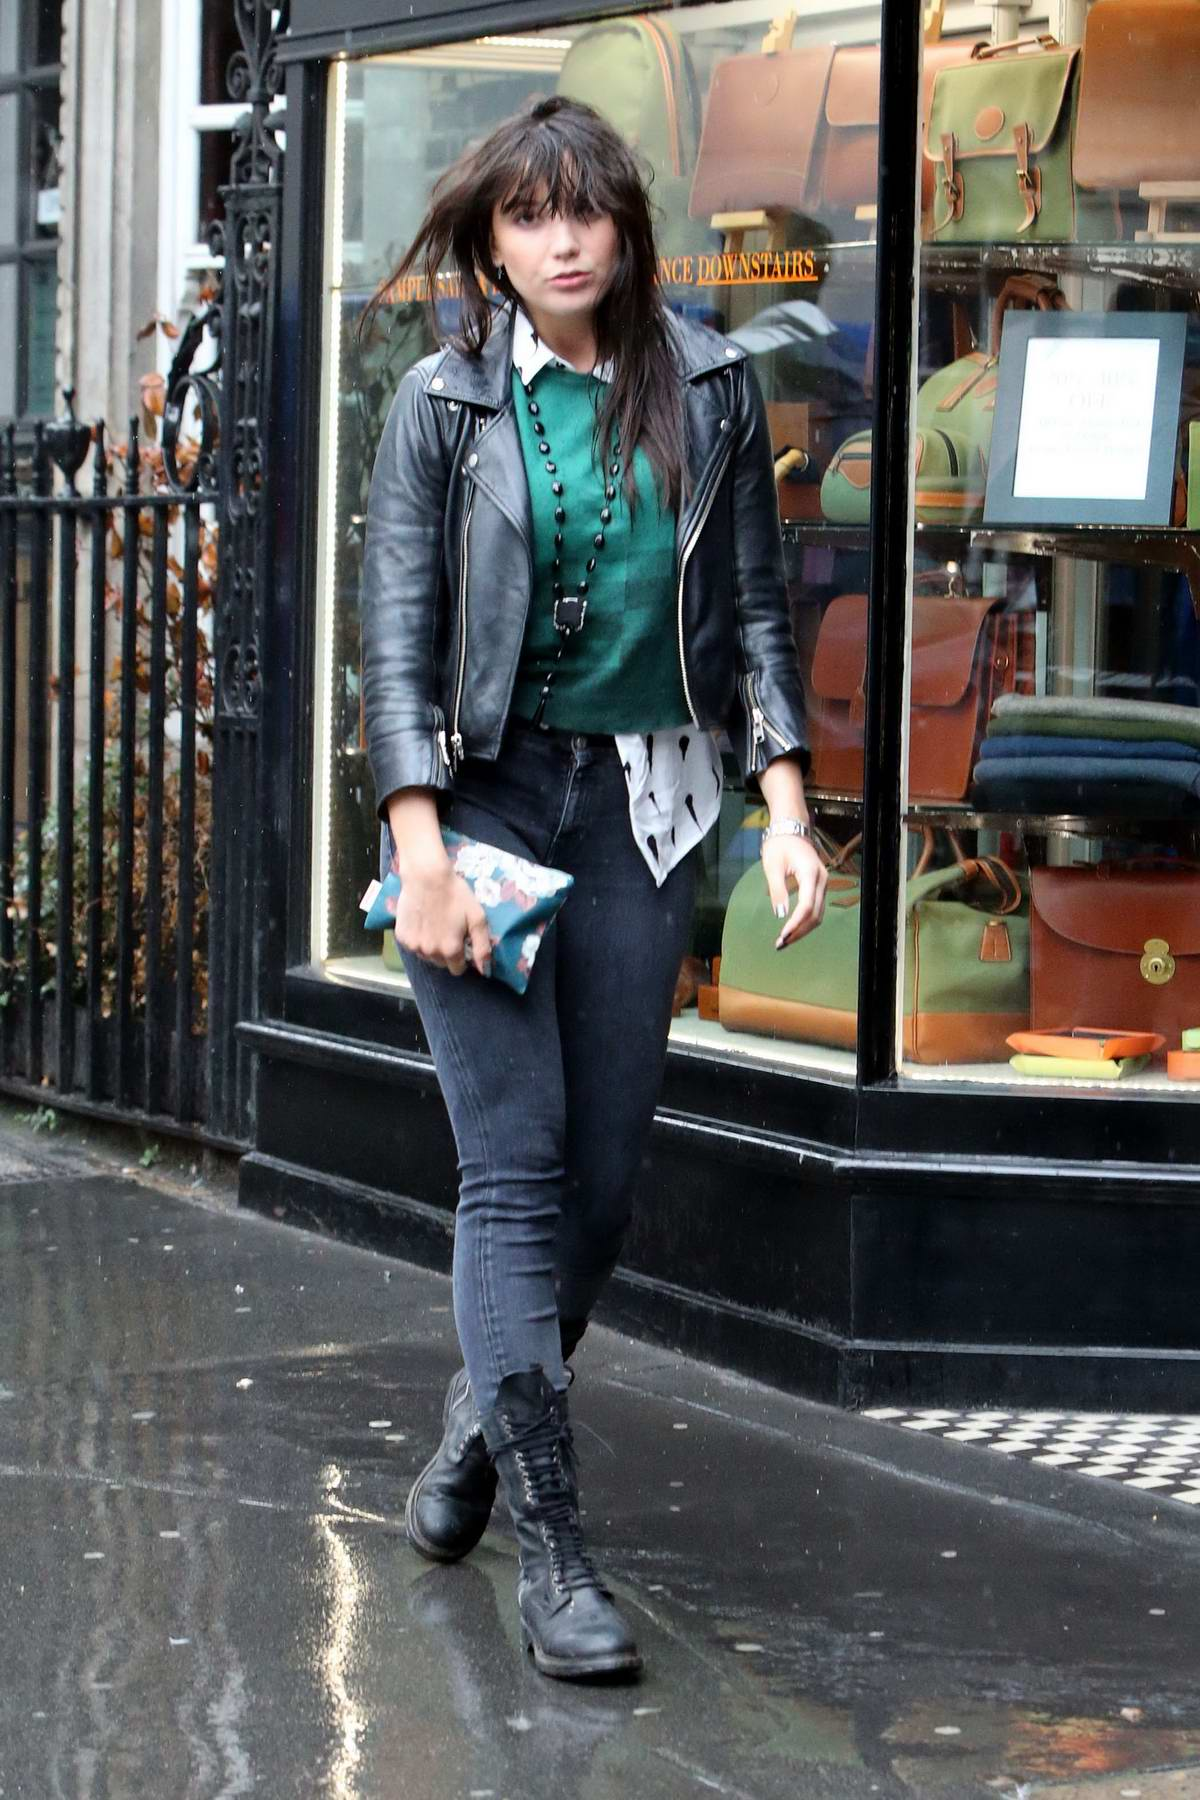 Daisy Lowe shopping on a rainy day in London